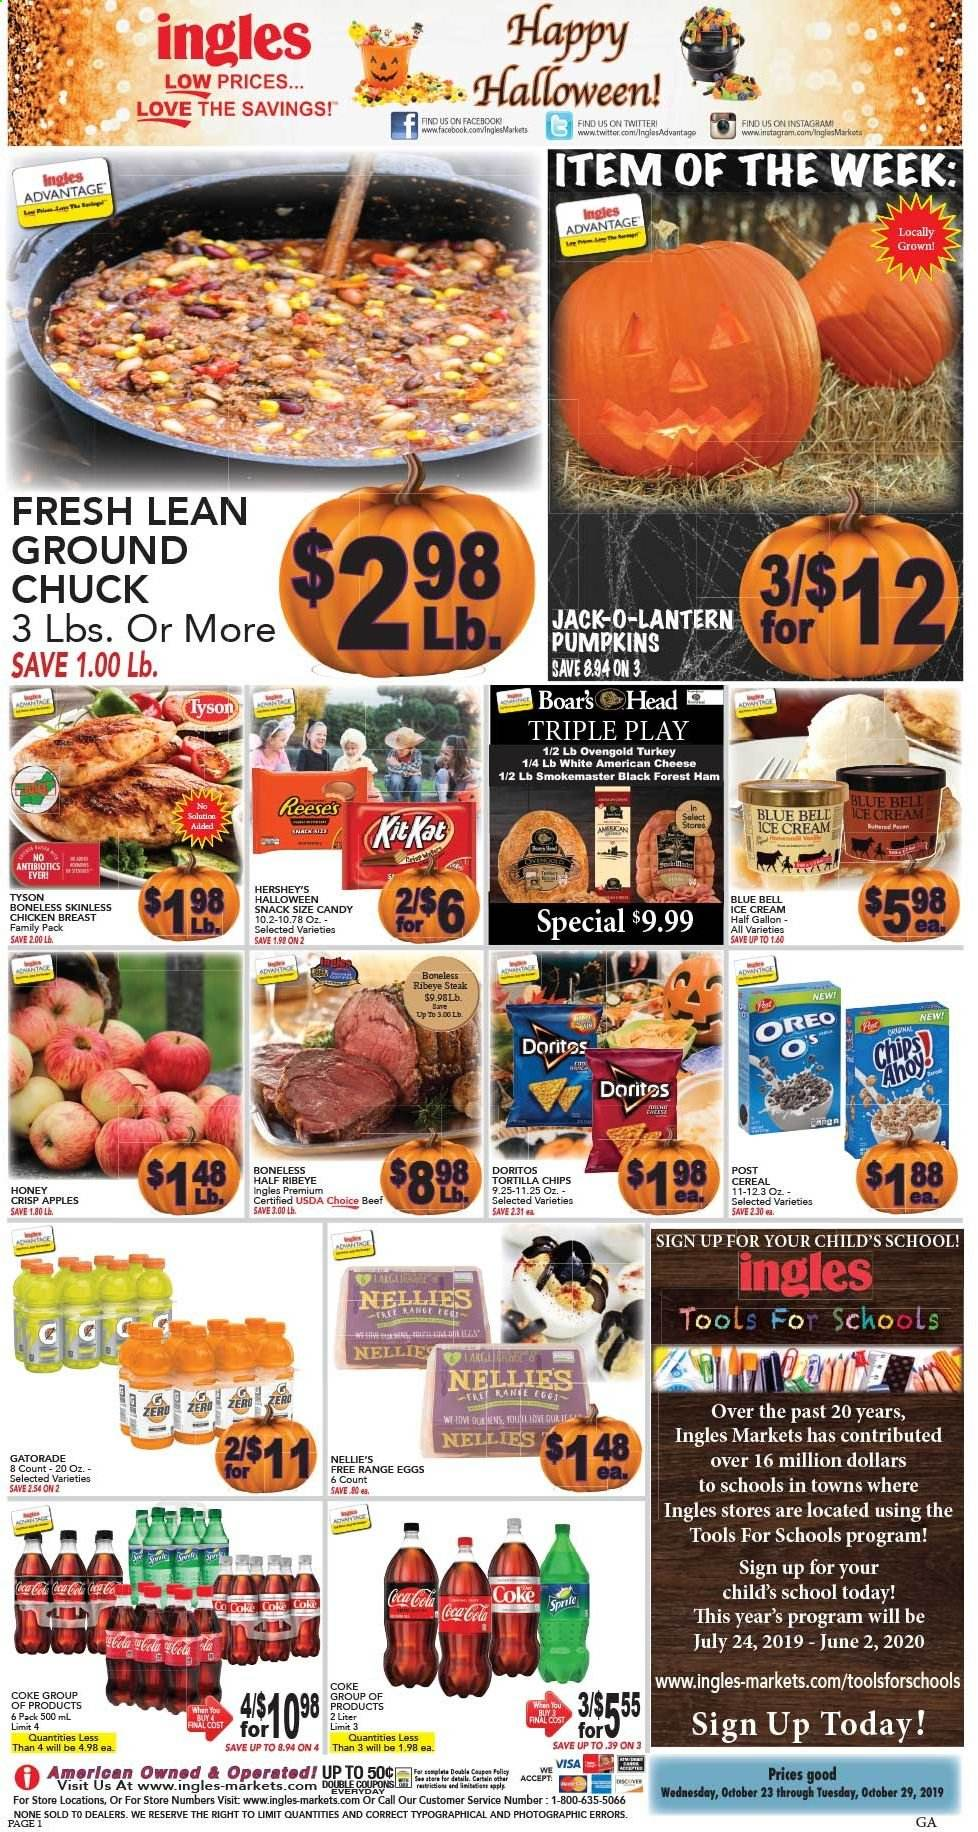 Ingles Flyer - 10.23.2019 - 10.29.2019 - Sales products - apples, ham, american cheese, cheese, Oreo, eggs, ice cream, candy, Doritos, tortilla chips, chips, snack, cereals, honey, Coca-Cola, turkey, chicken, chicken breast, beef meat, steak, ground chuck, tools. Page 1.